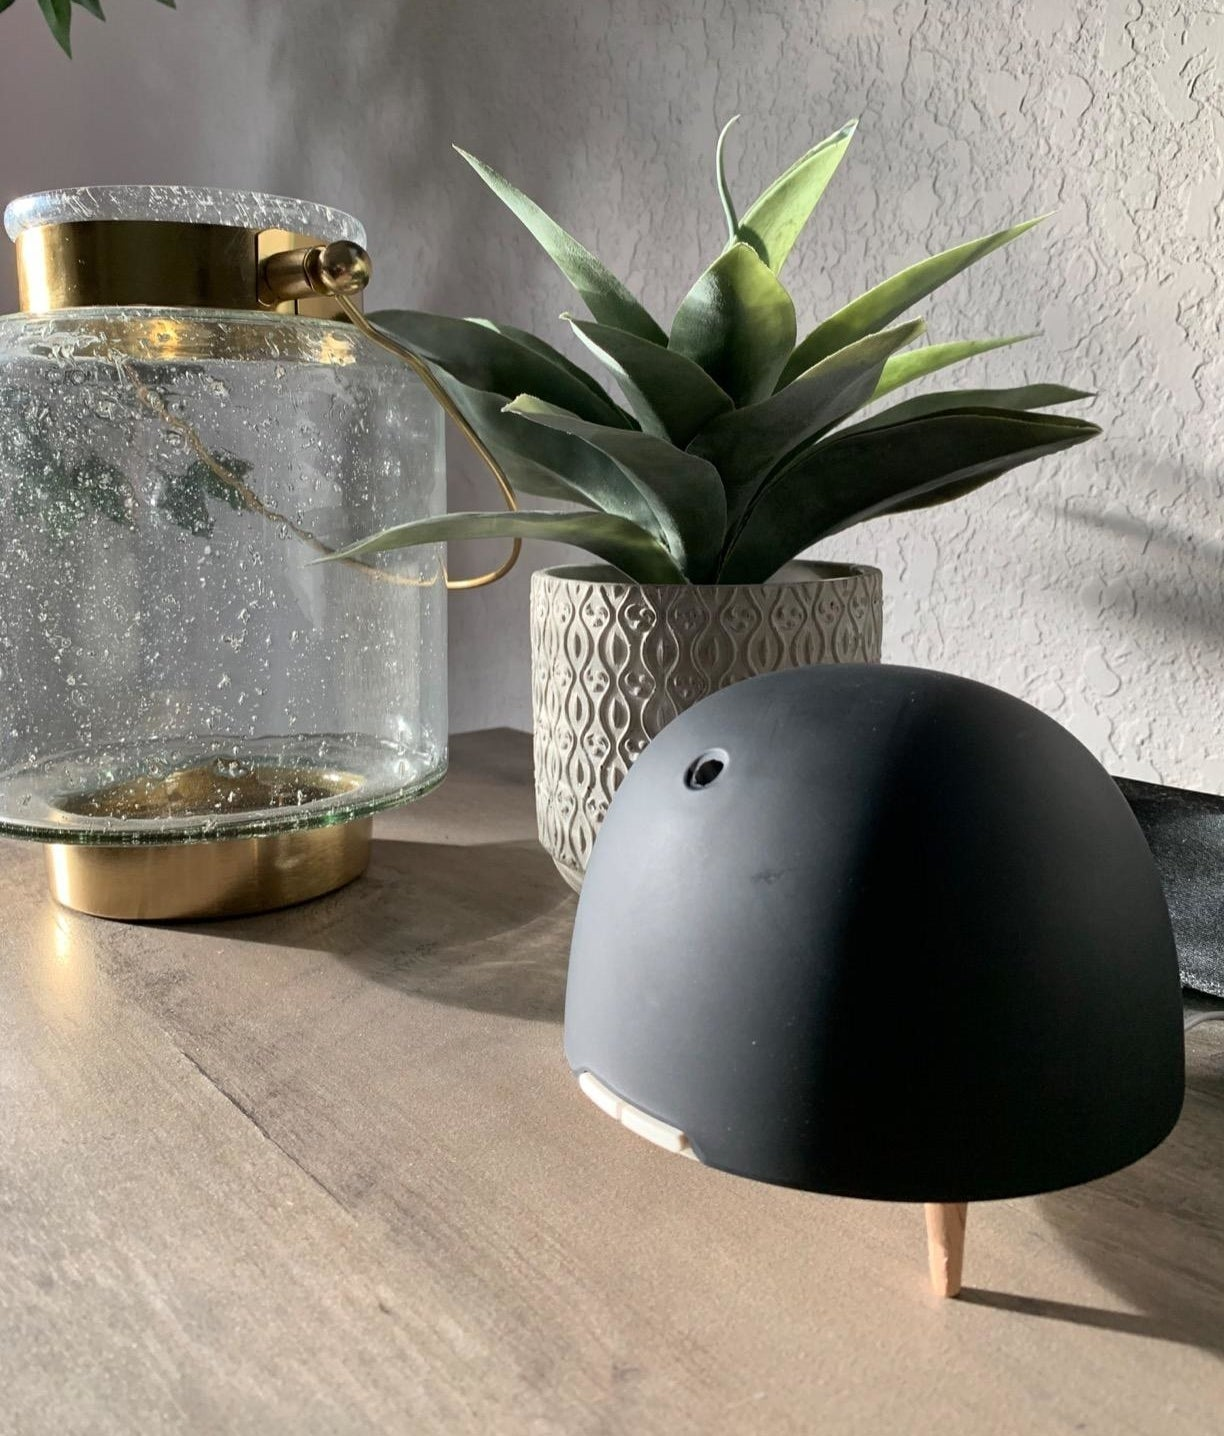 A reviewer's photo showing black diffuser on a table next to a succulent